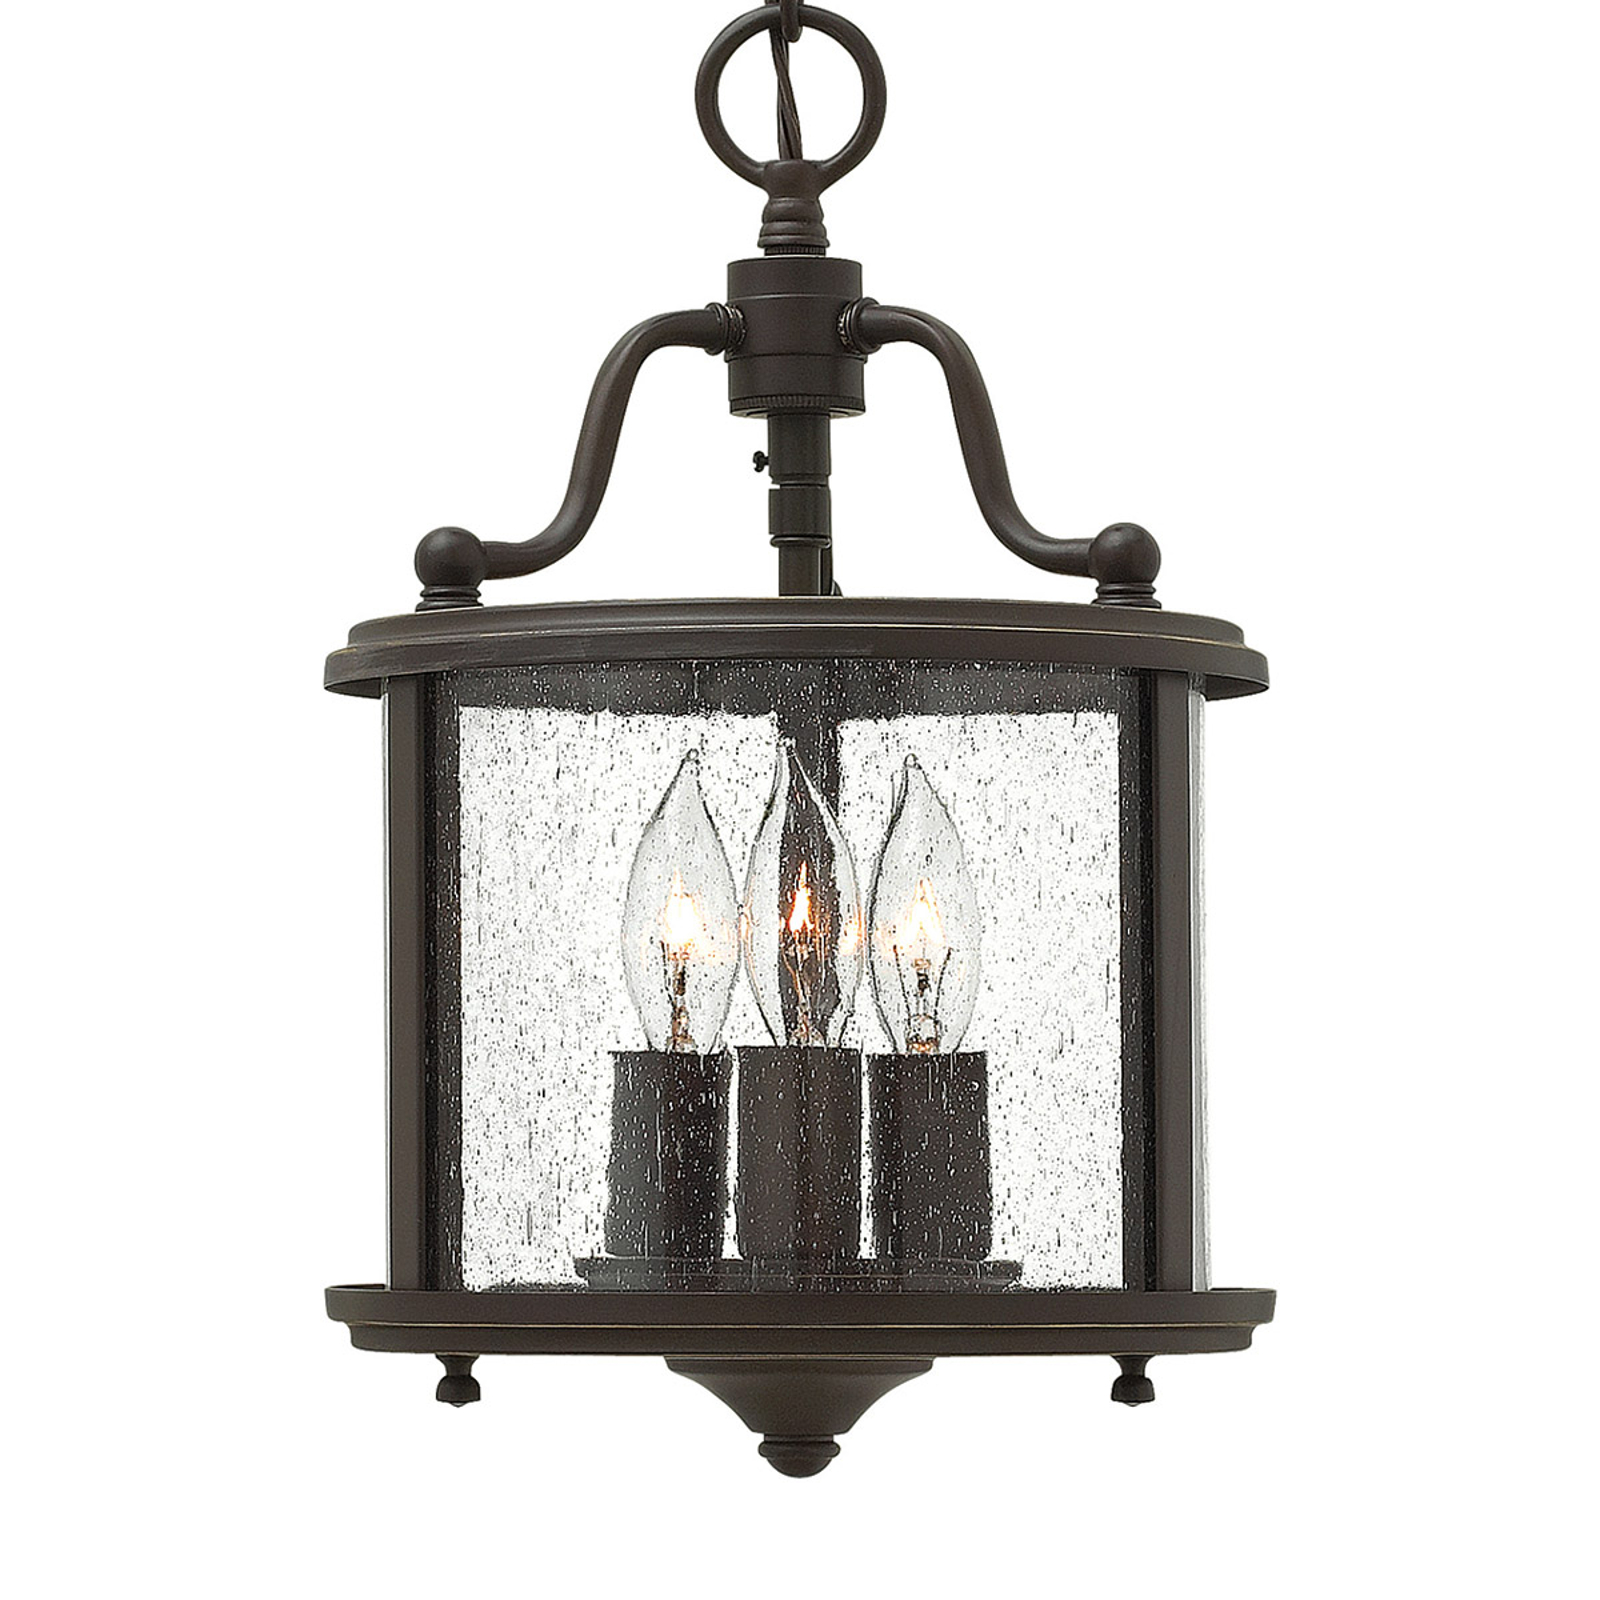 Antique-looking hanging light Gentry_3048315_1